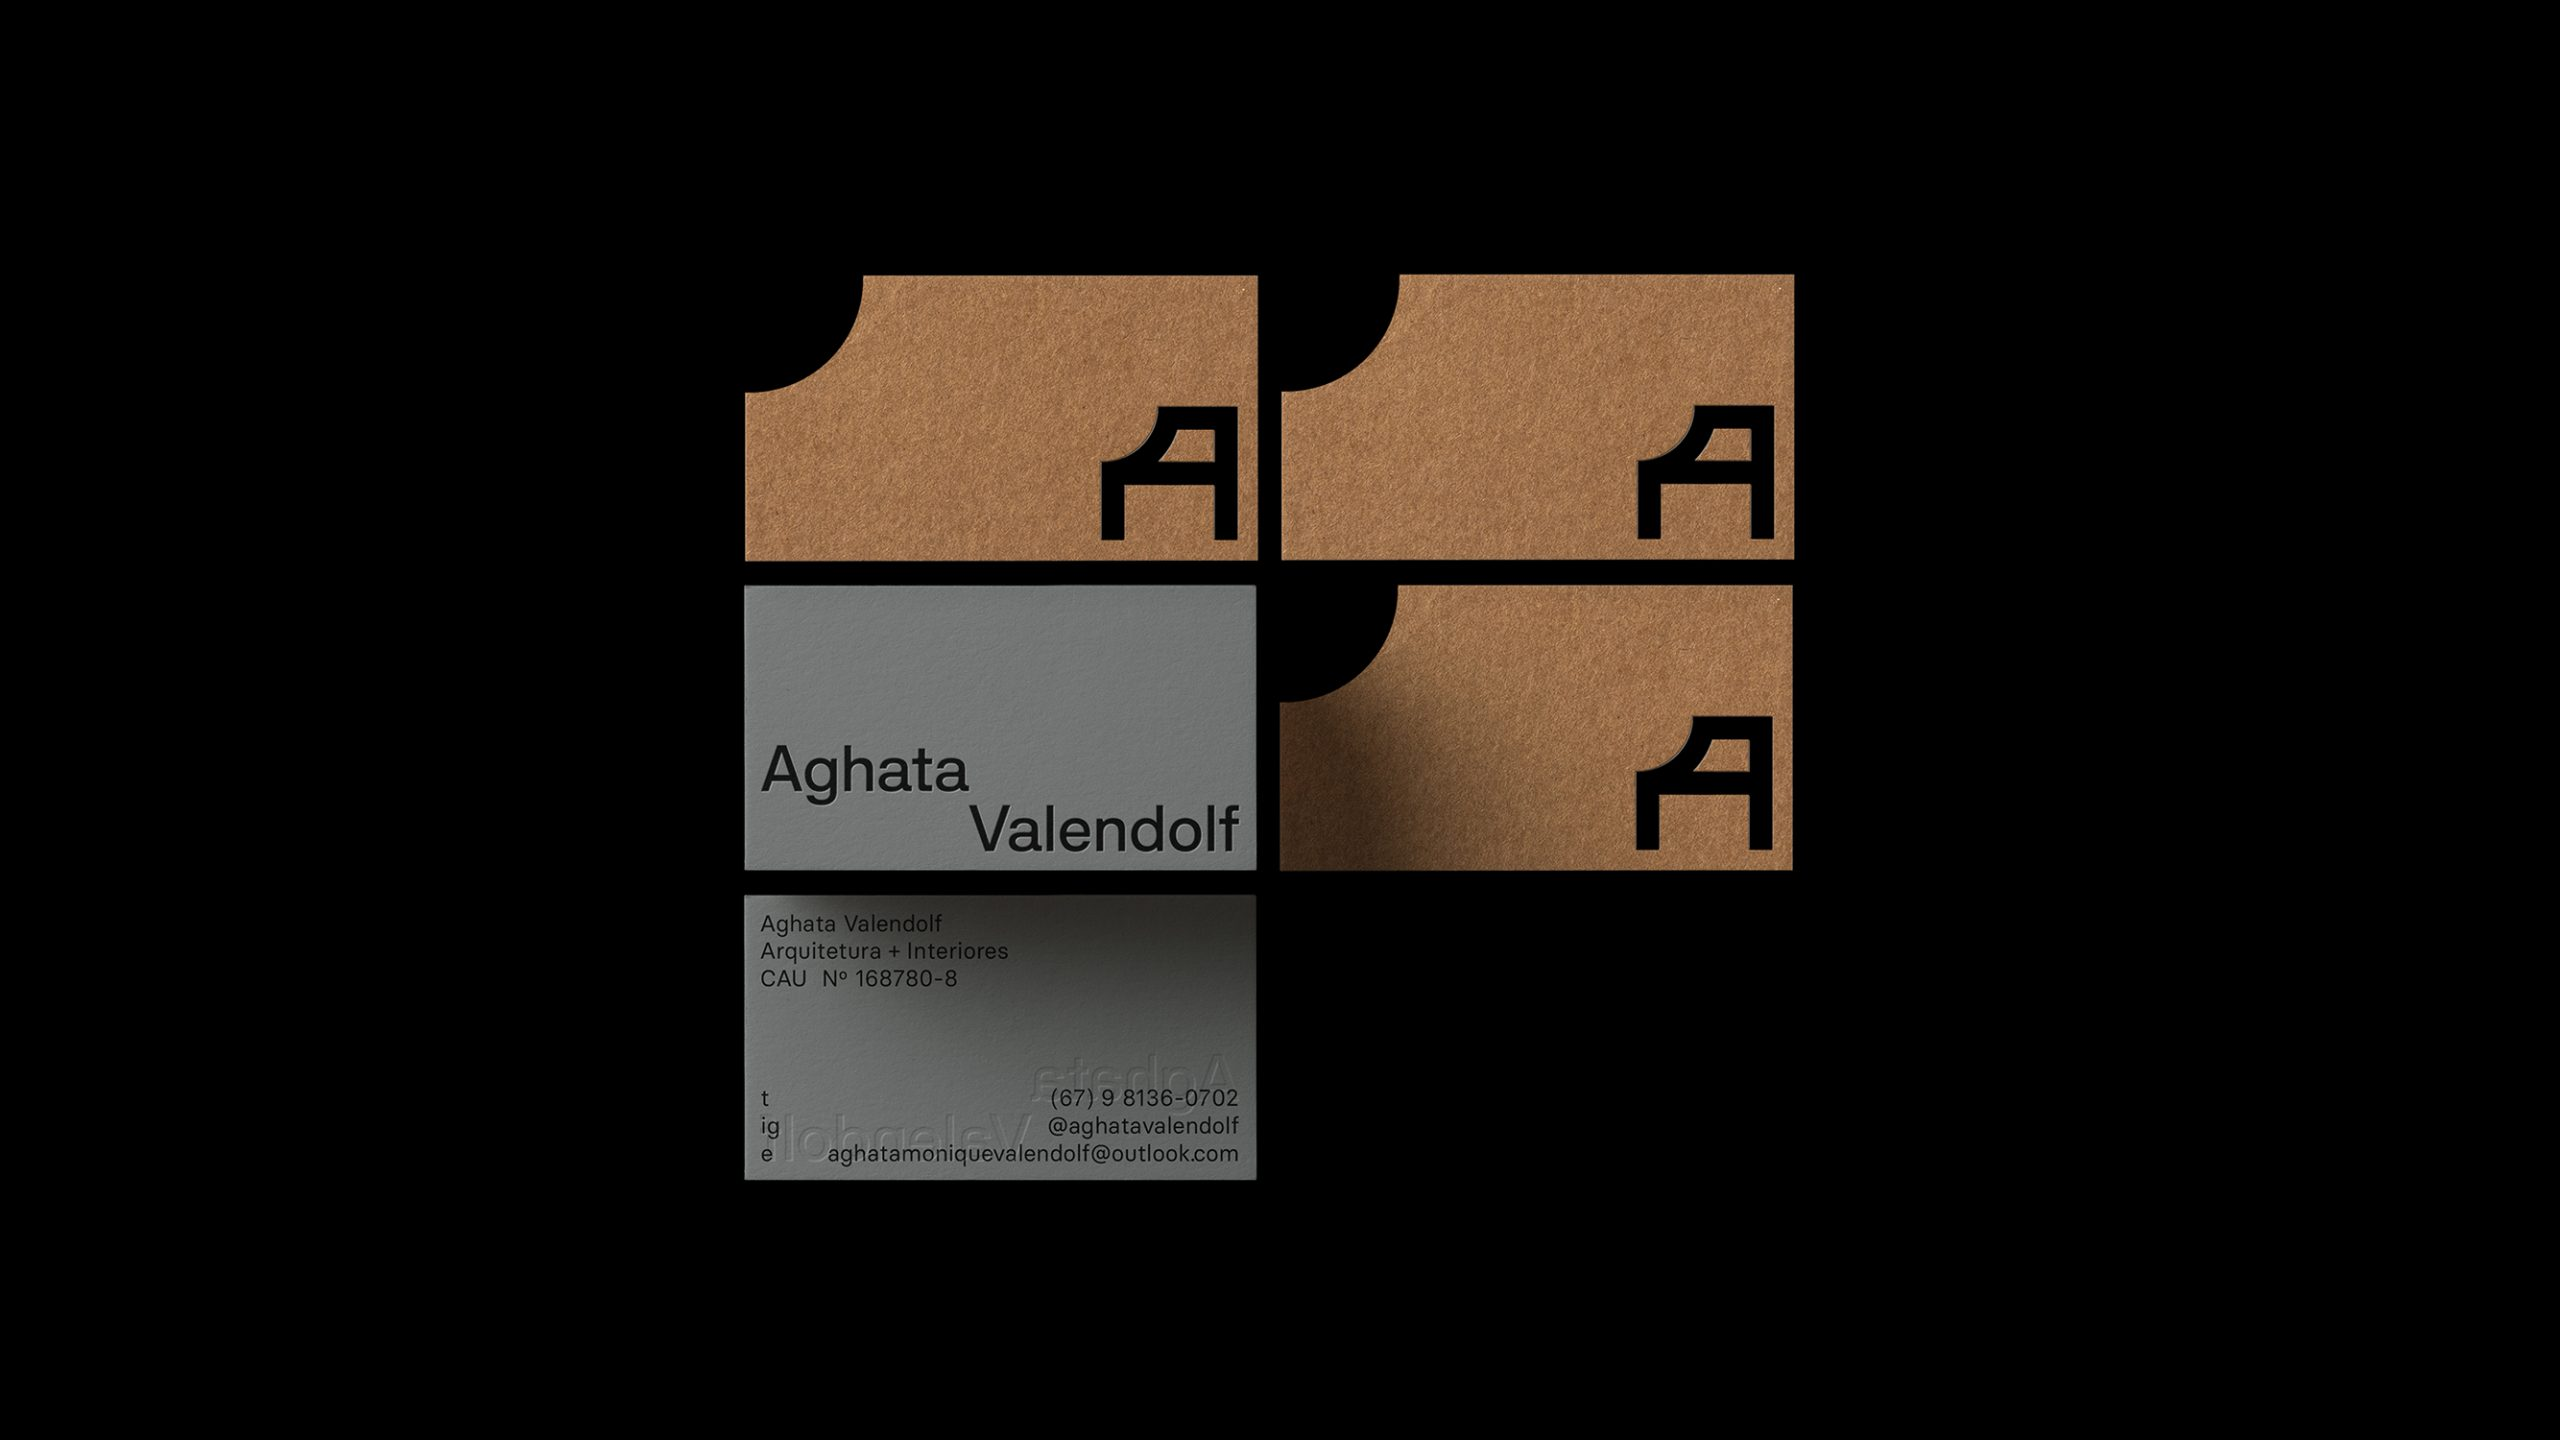 Aghata Valendolf business cards